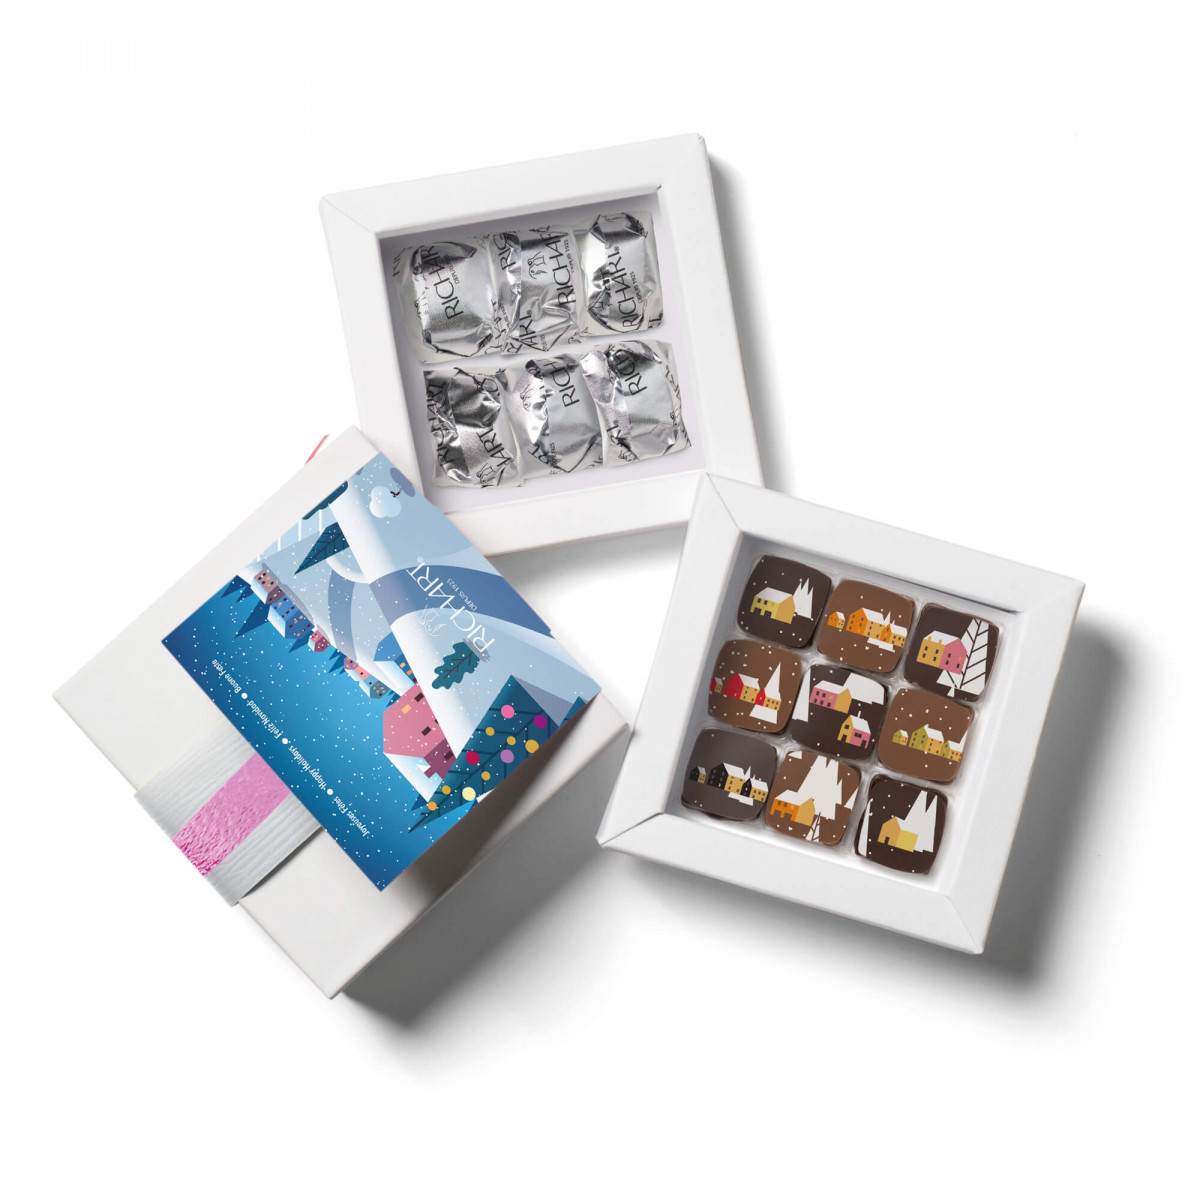 Frosty Holidays box of 9 Holidays chocolates and 6 glazed chestnuts